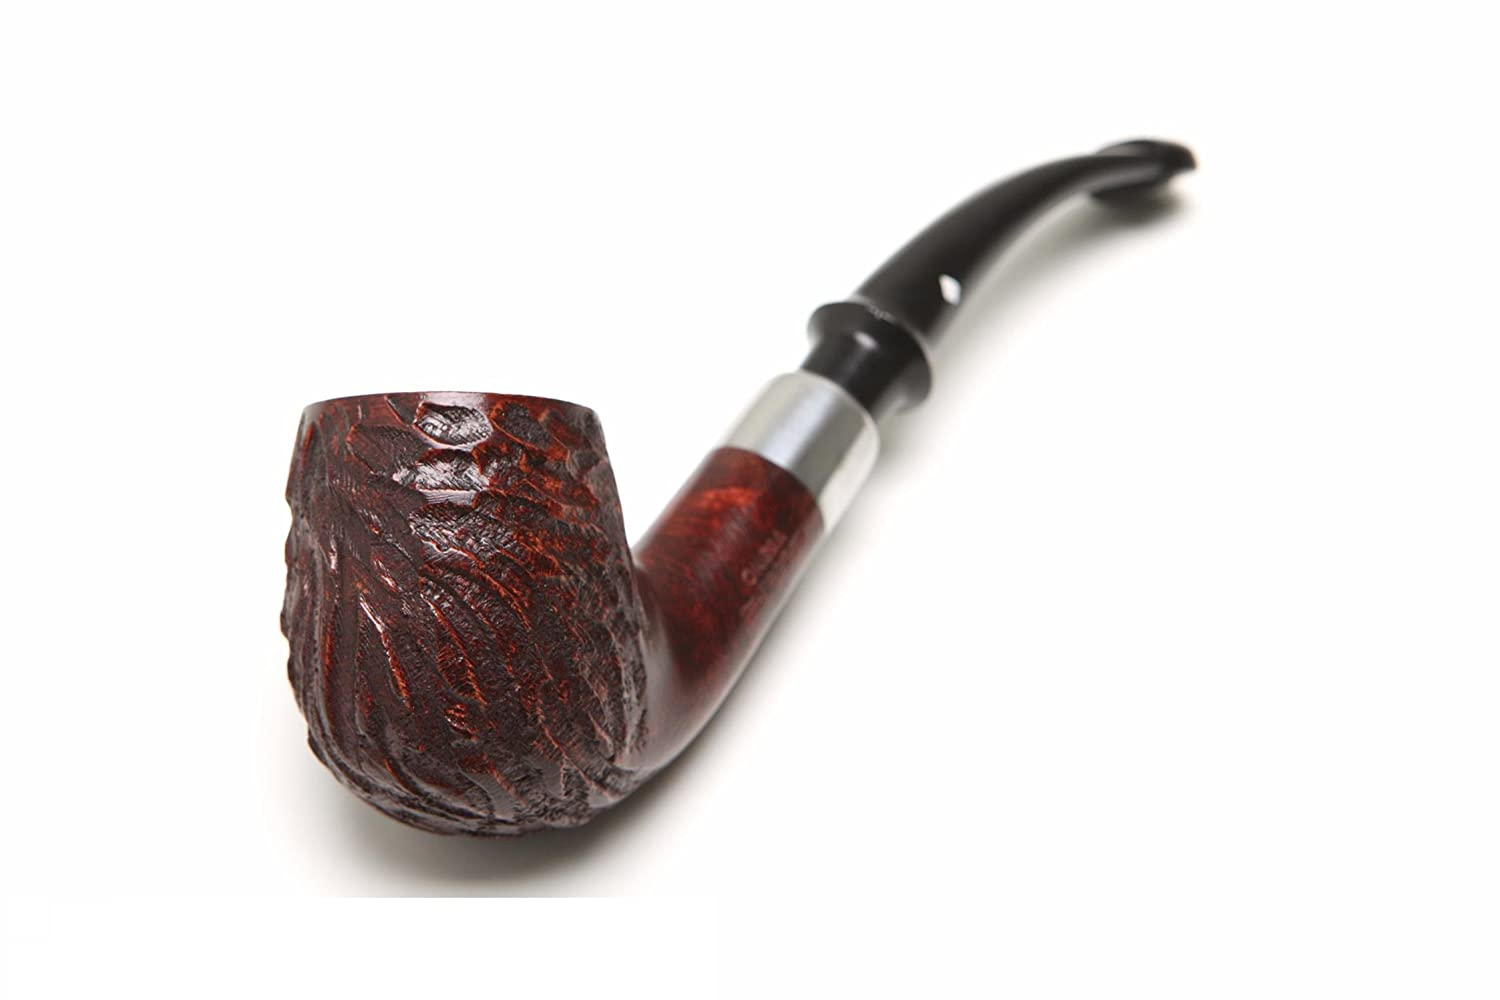 Dr. Grabow Omega Pipe – Carved Finish